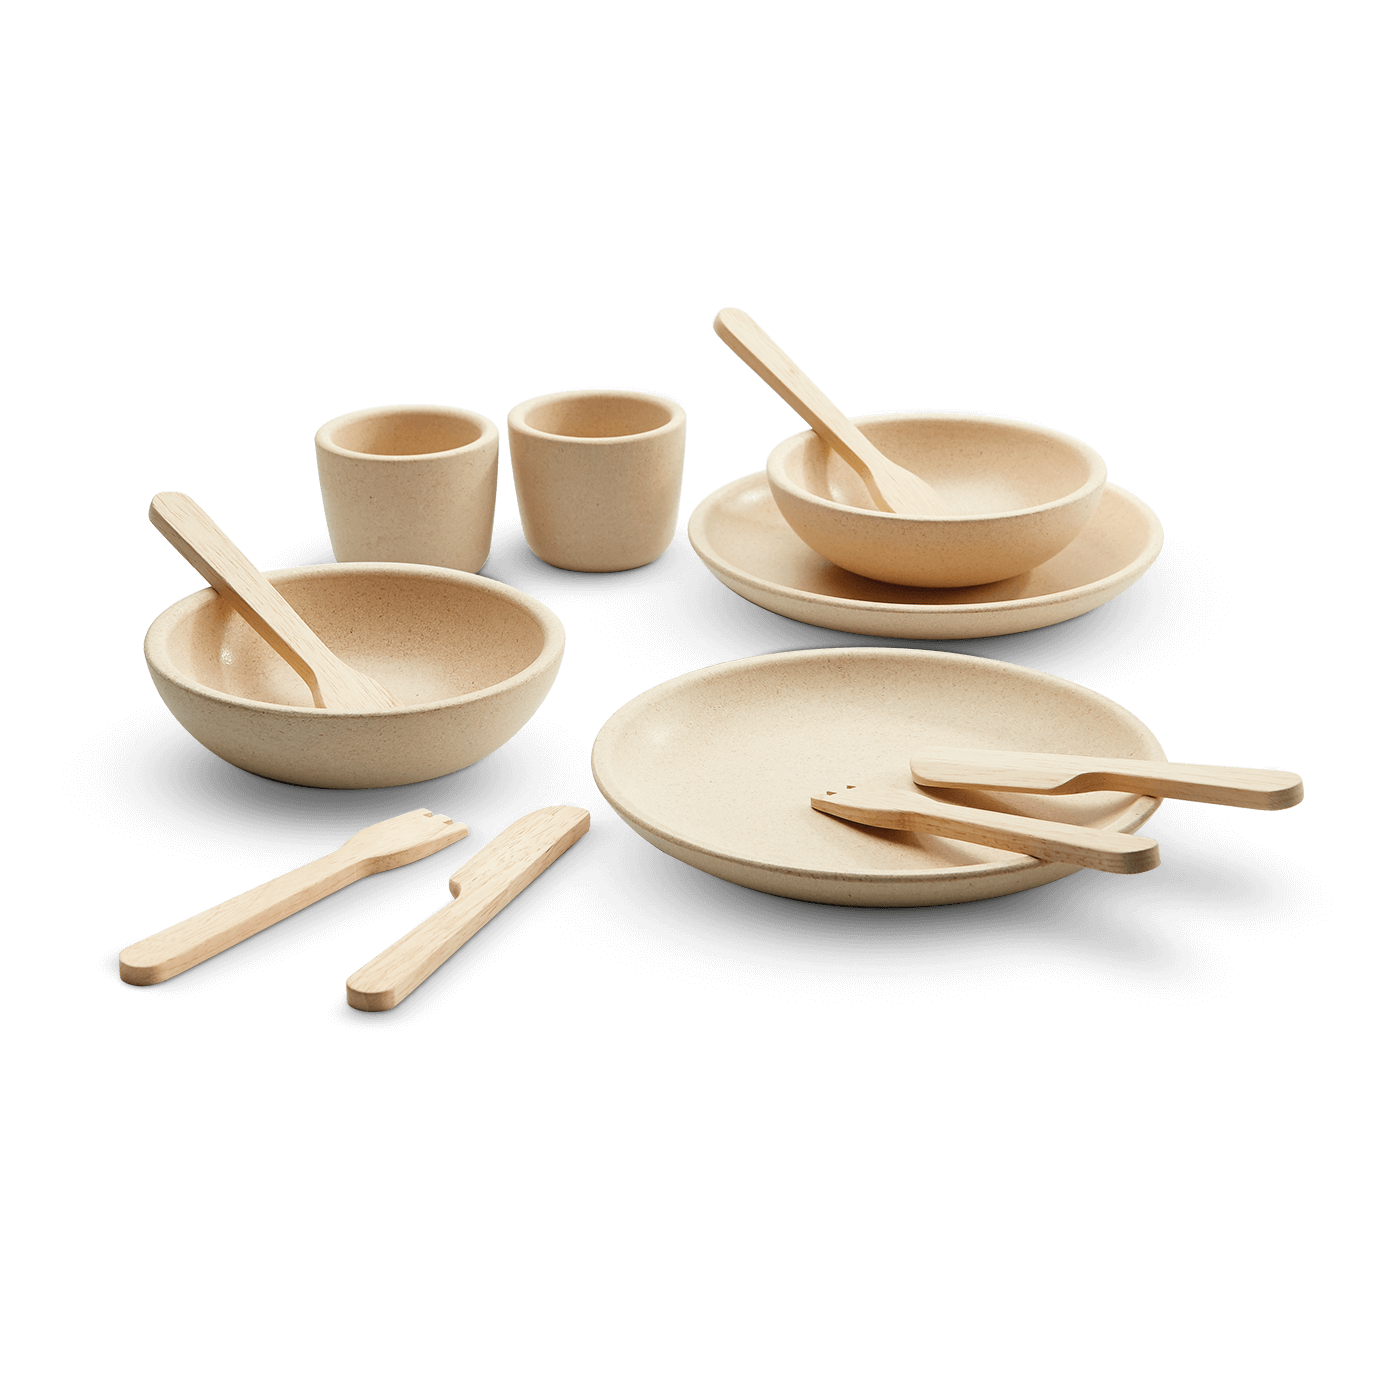 3614_PlanToys_TABLEWARE_SET_Pretend_Play_Imagination_Creative_Language_and_Communications_Social_Coordination_Emotion_2yrs_Wooden_toys_Education_toys_Safety_Toys_Non-toxic_0.png